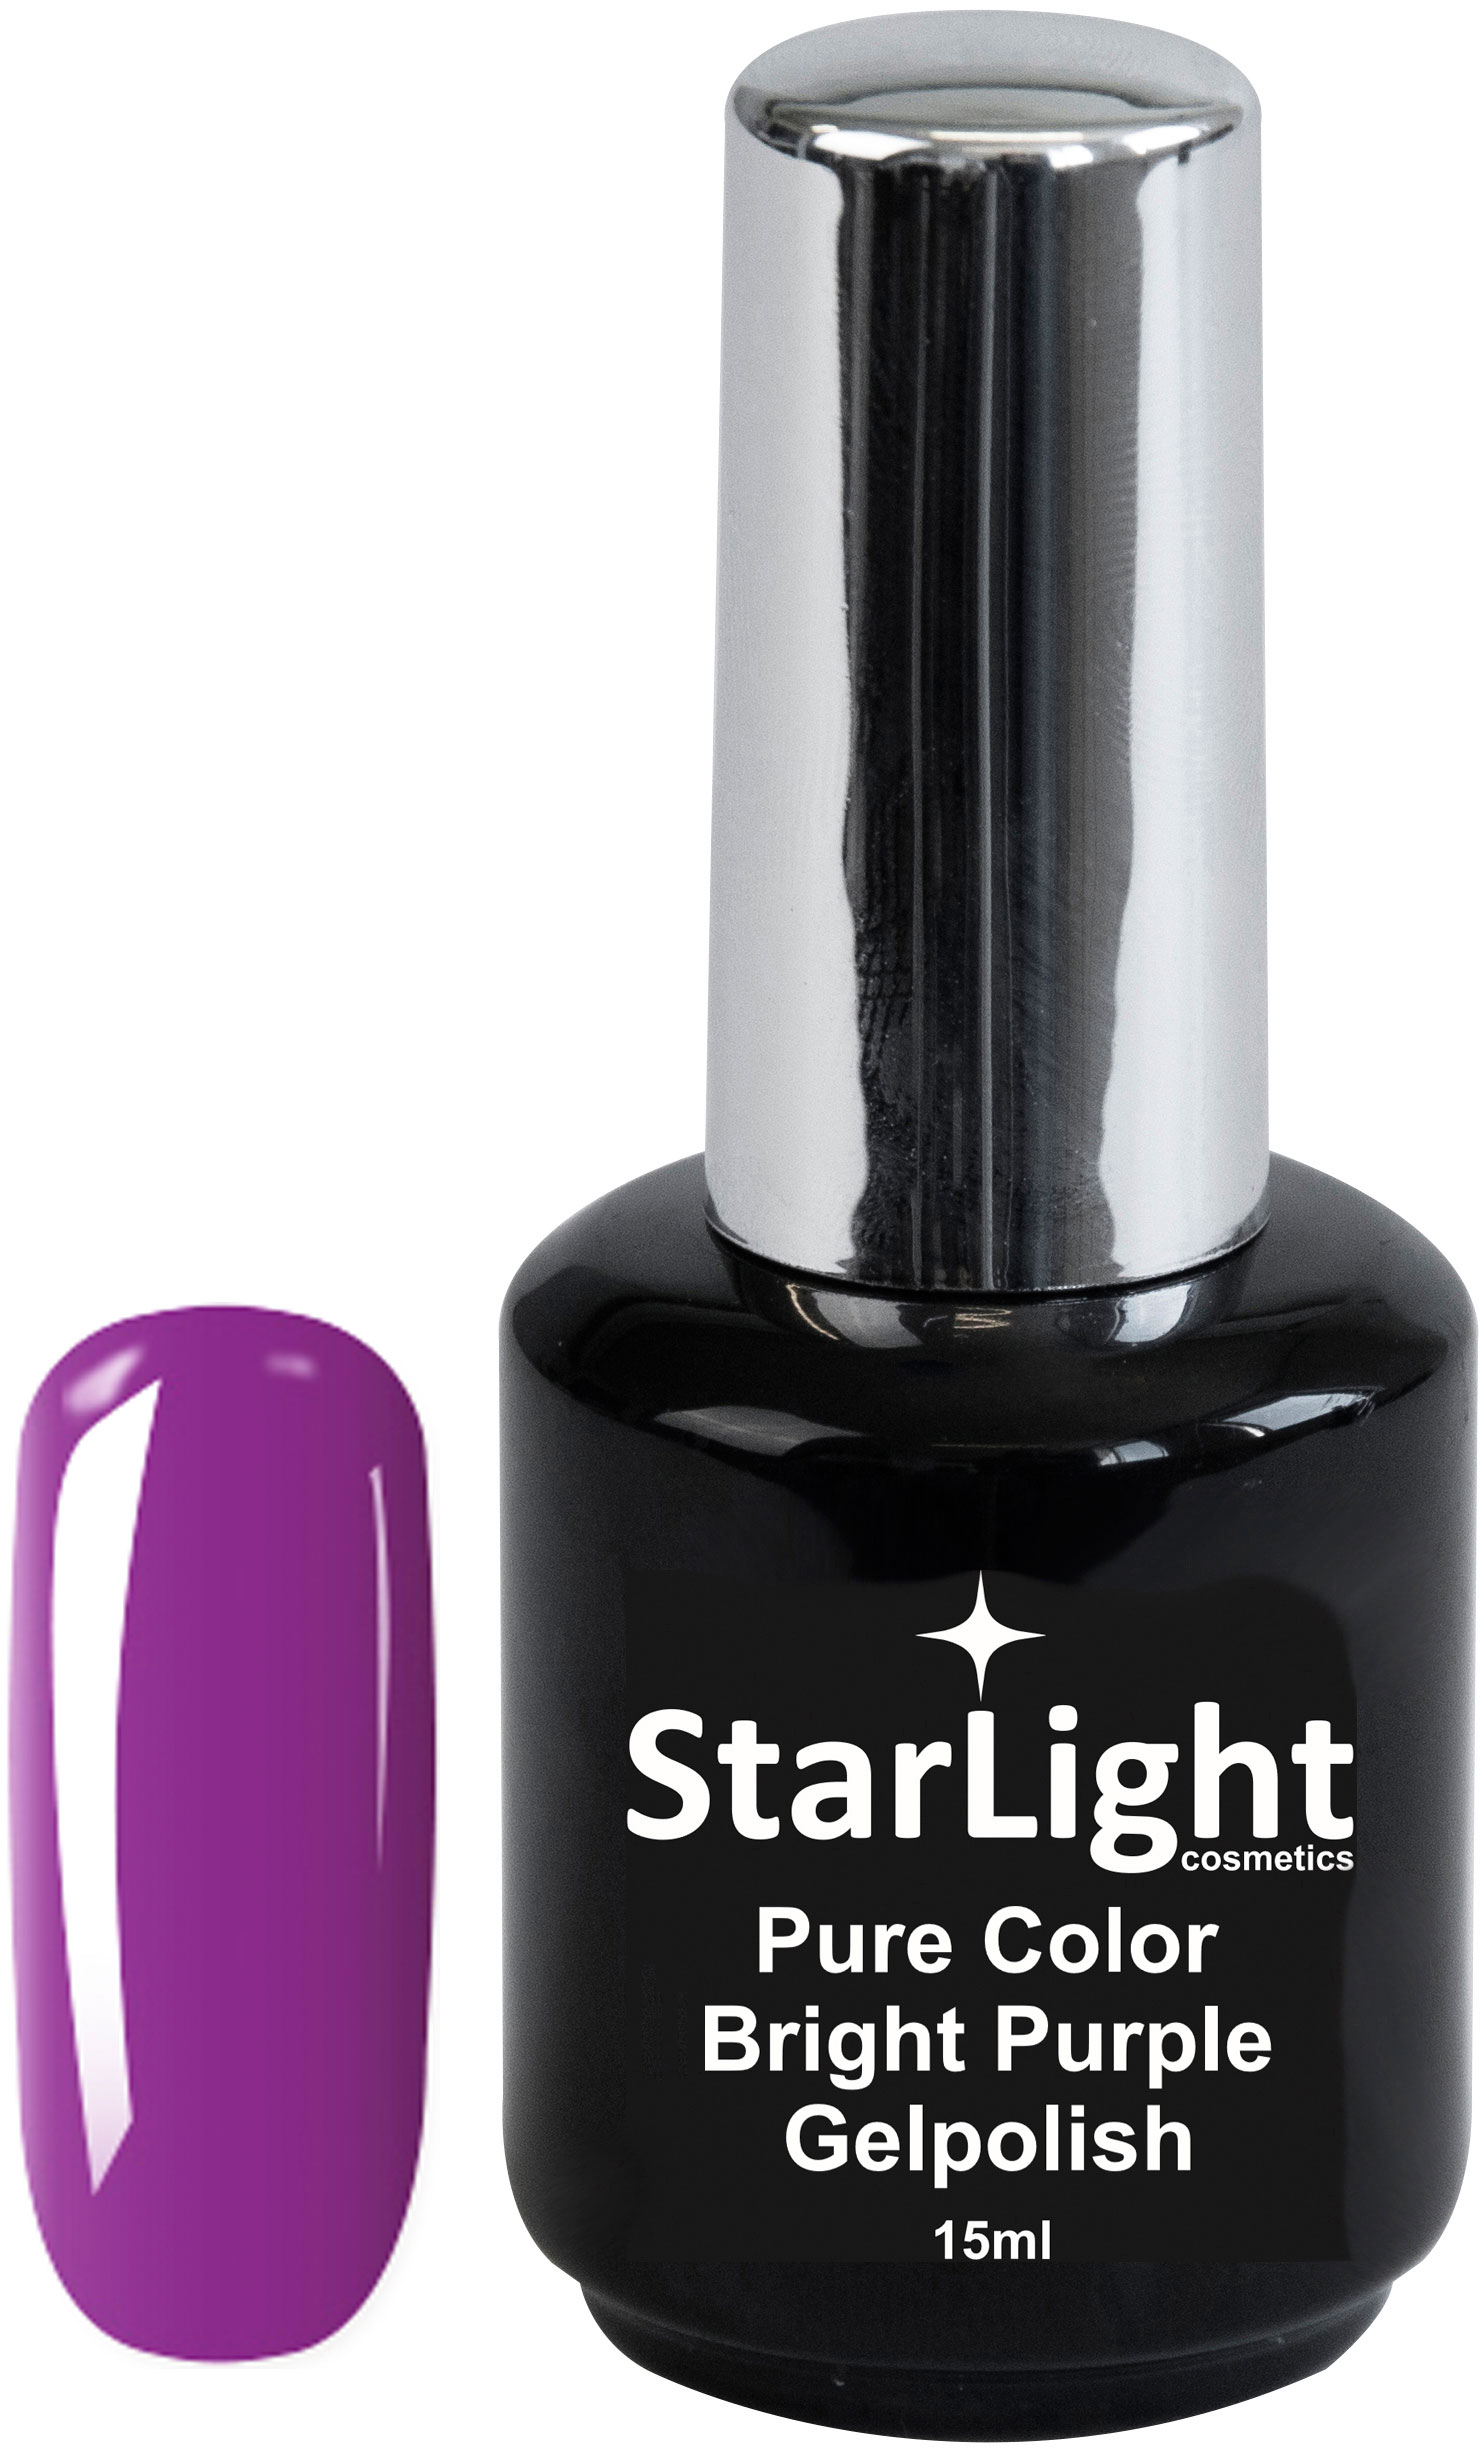 Naglar Gelpolish Pure Color Bright Purple - 15 ml